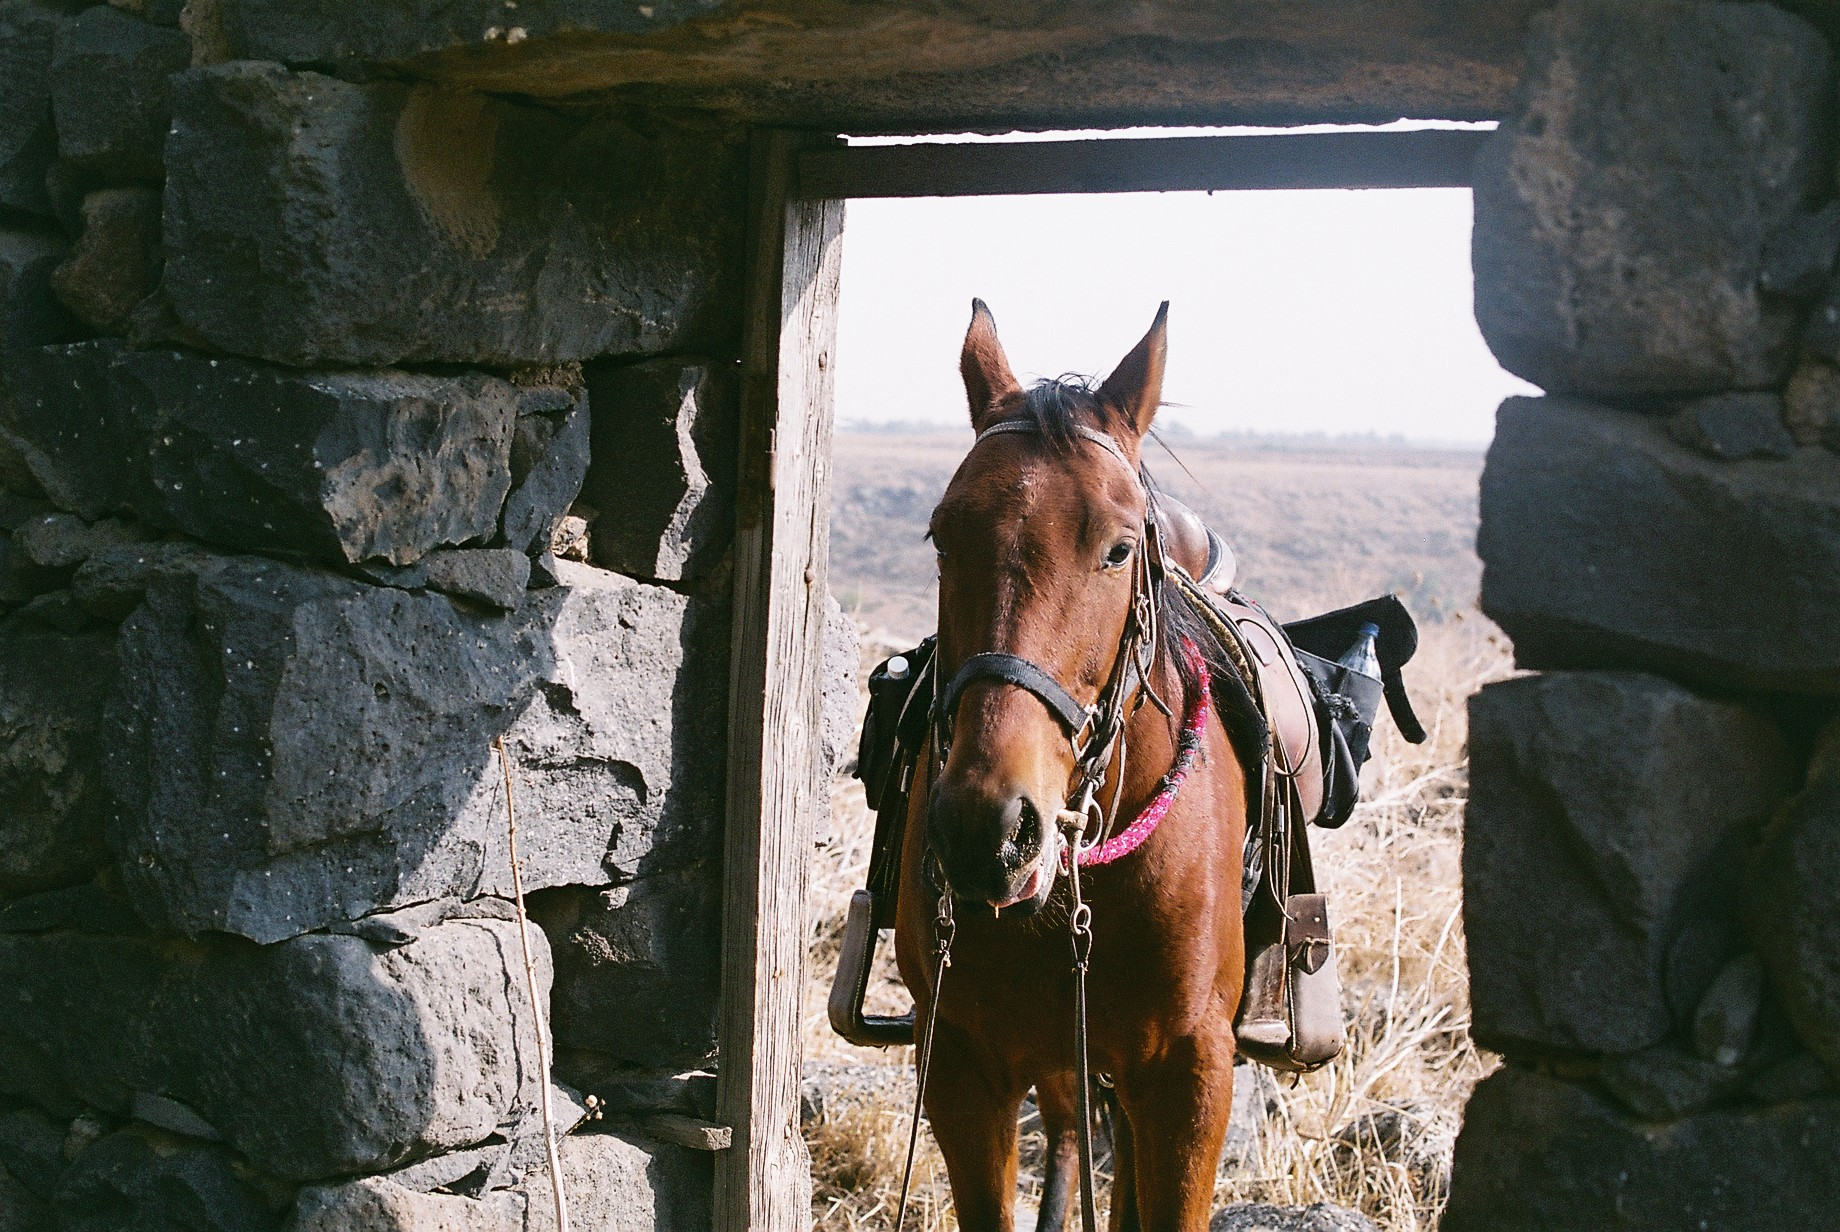 Horse on the door Film by Arielzuk